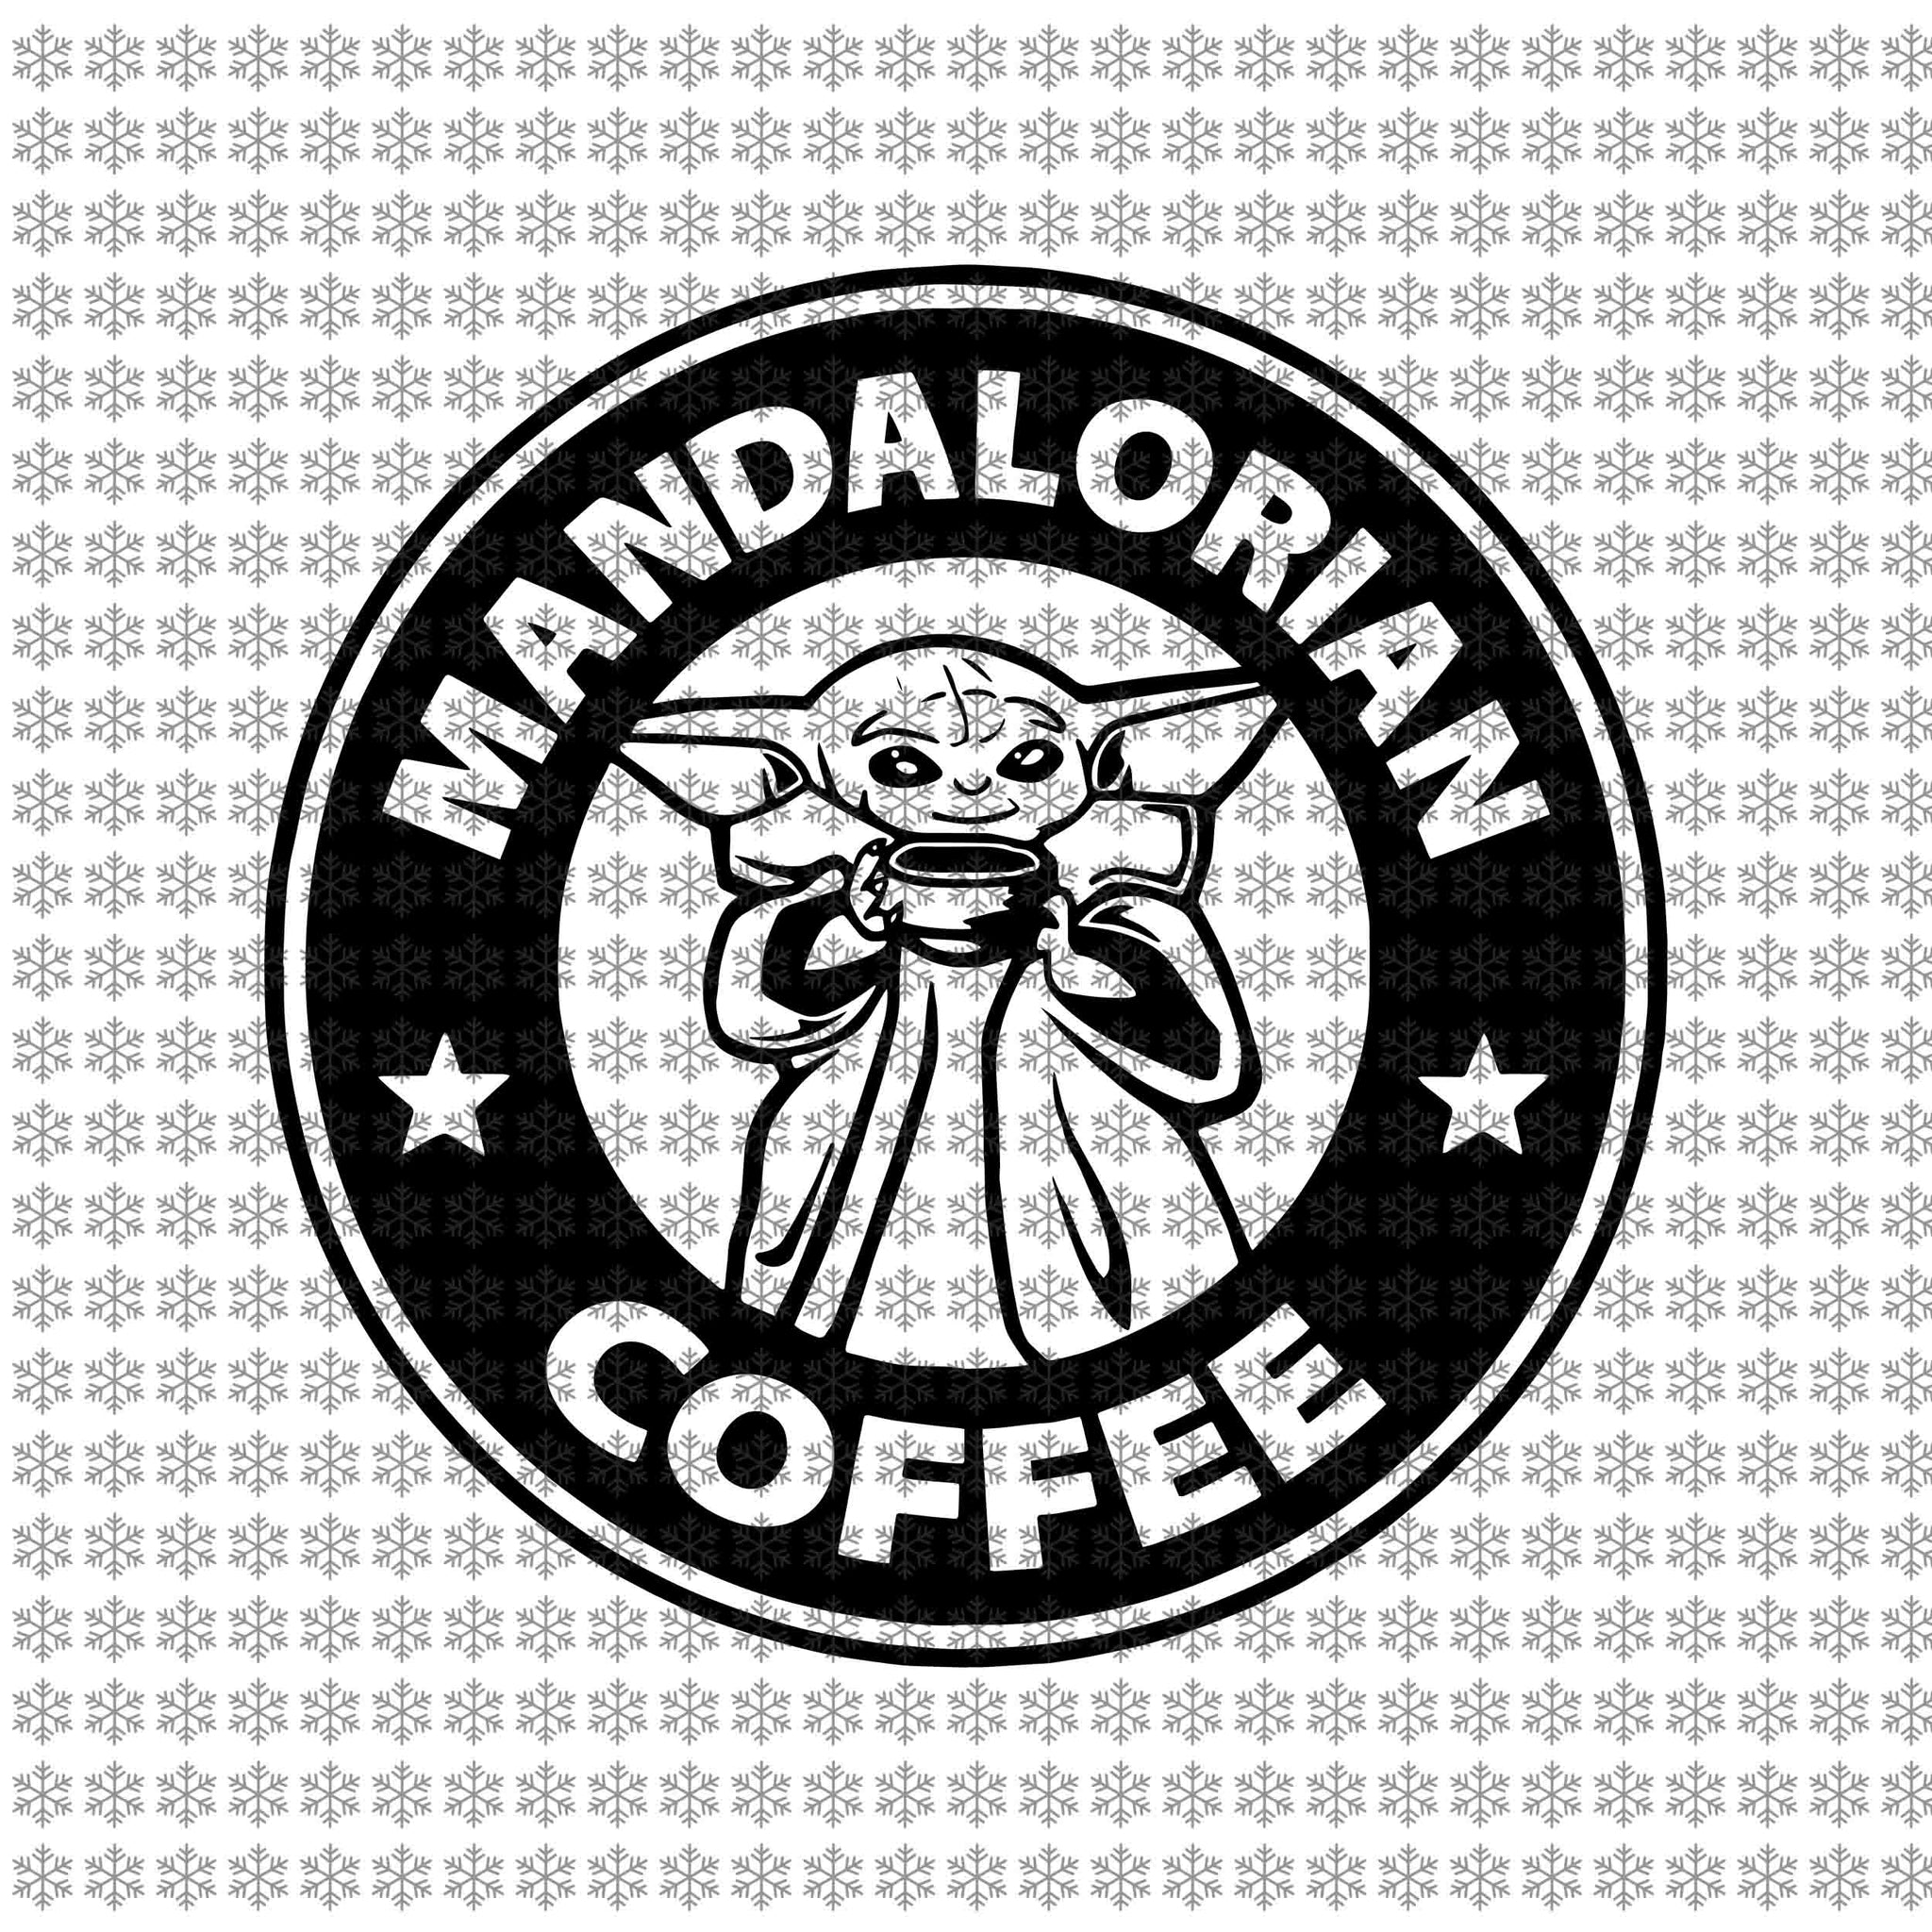 Mandalorian coffee, Baby yoda svg, baby yoda vector, baby yoda digital file, star wars svg, star wars vector, The Mandalorian the child svg